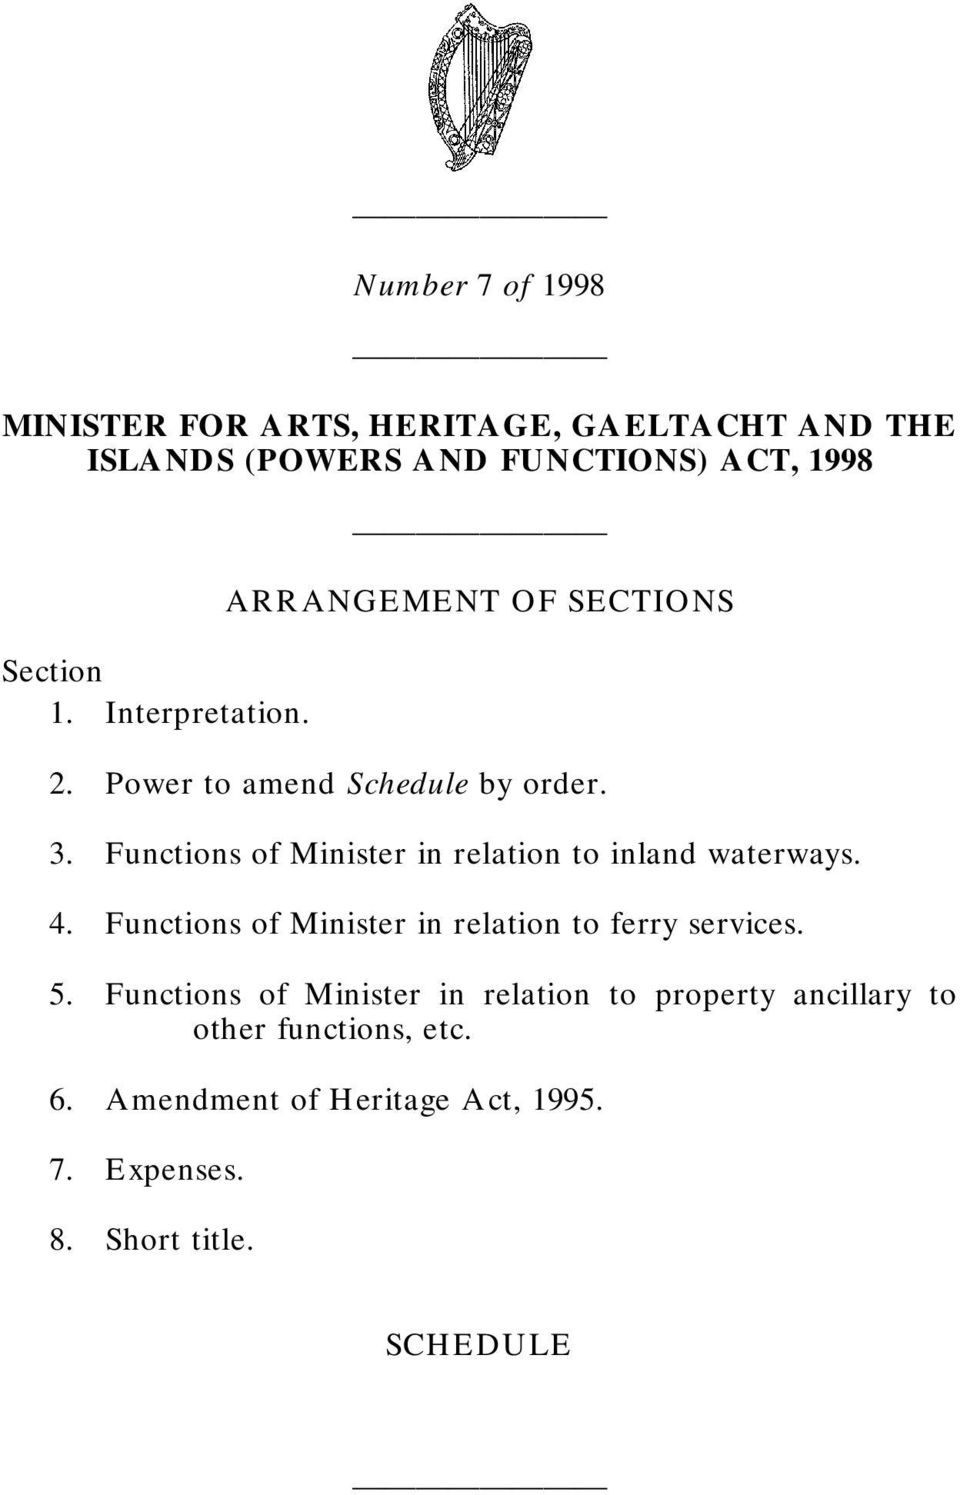 Functions of Minister in relation to inland waterways. 4. Functions of Minister in relation to ferry services. 5.